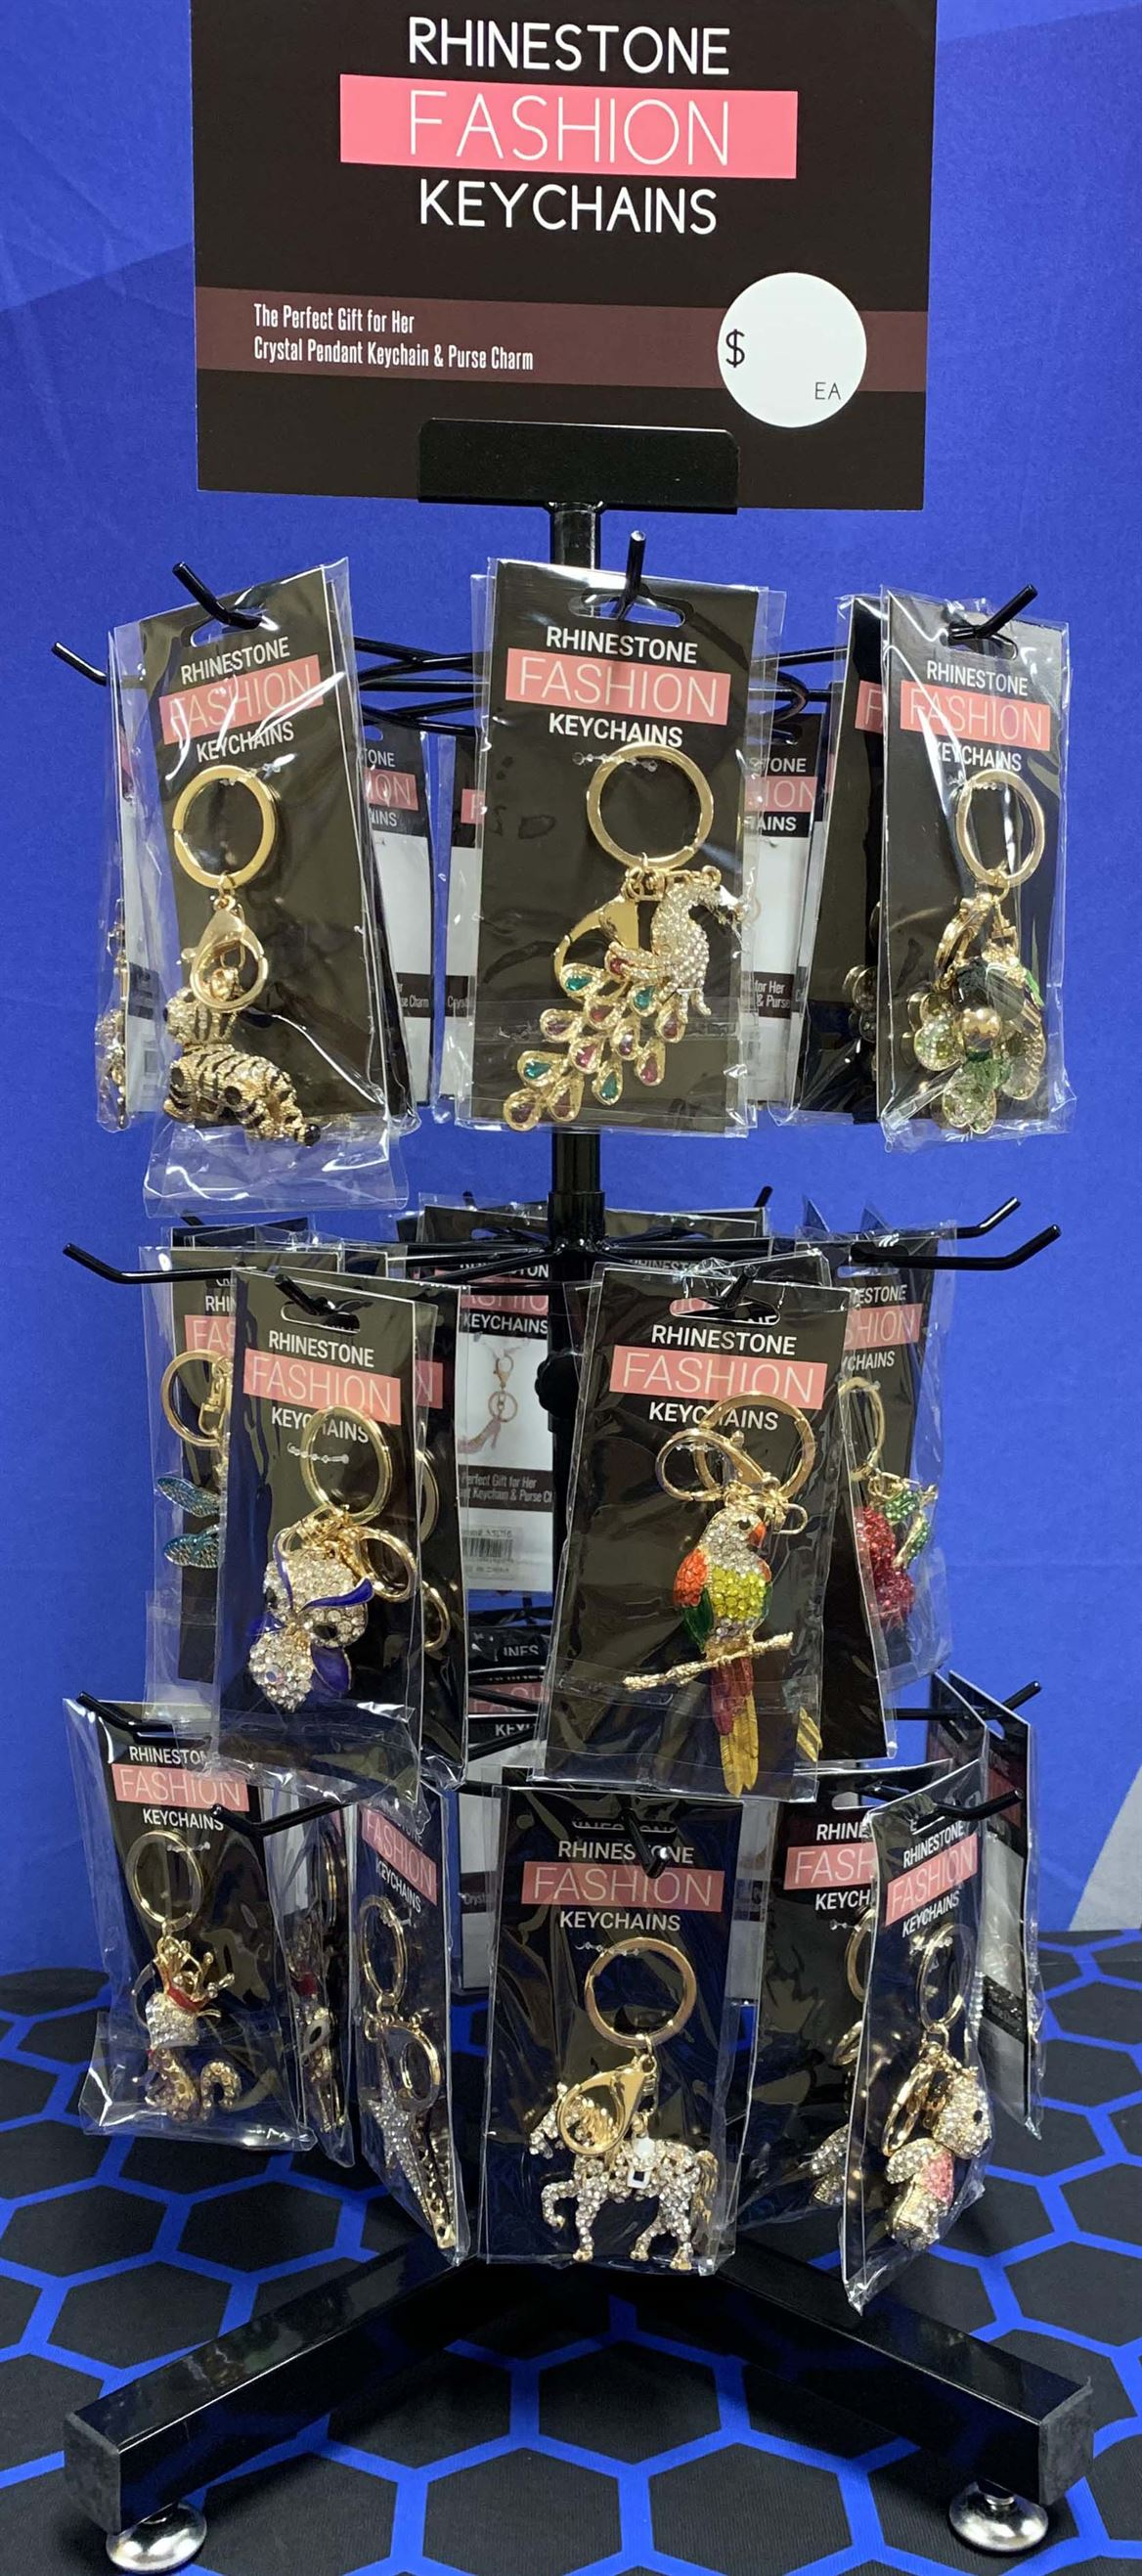 RHINESTONE FASHION KEYCHAIN, 48/DISPLAY